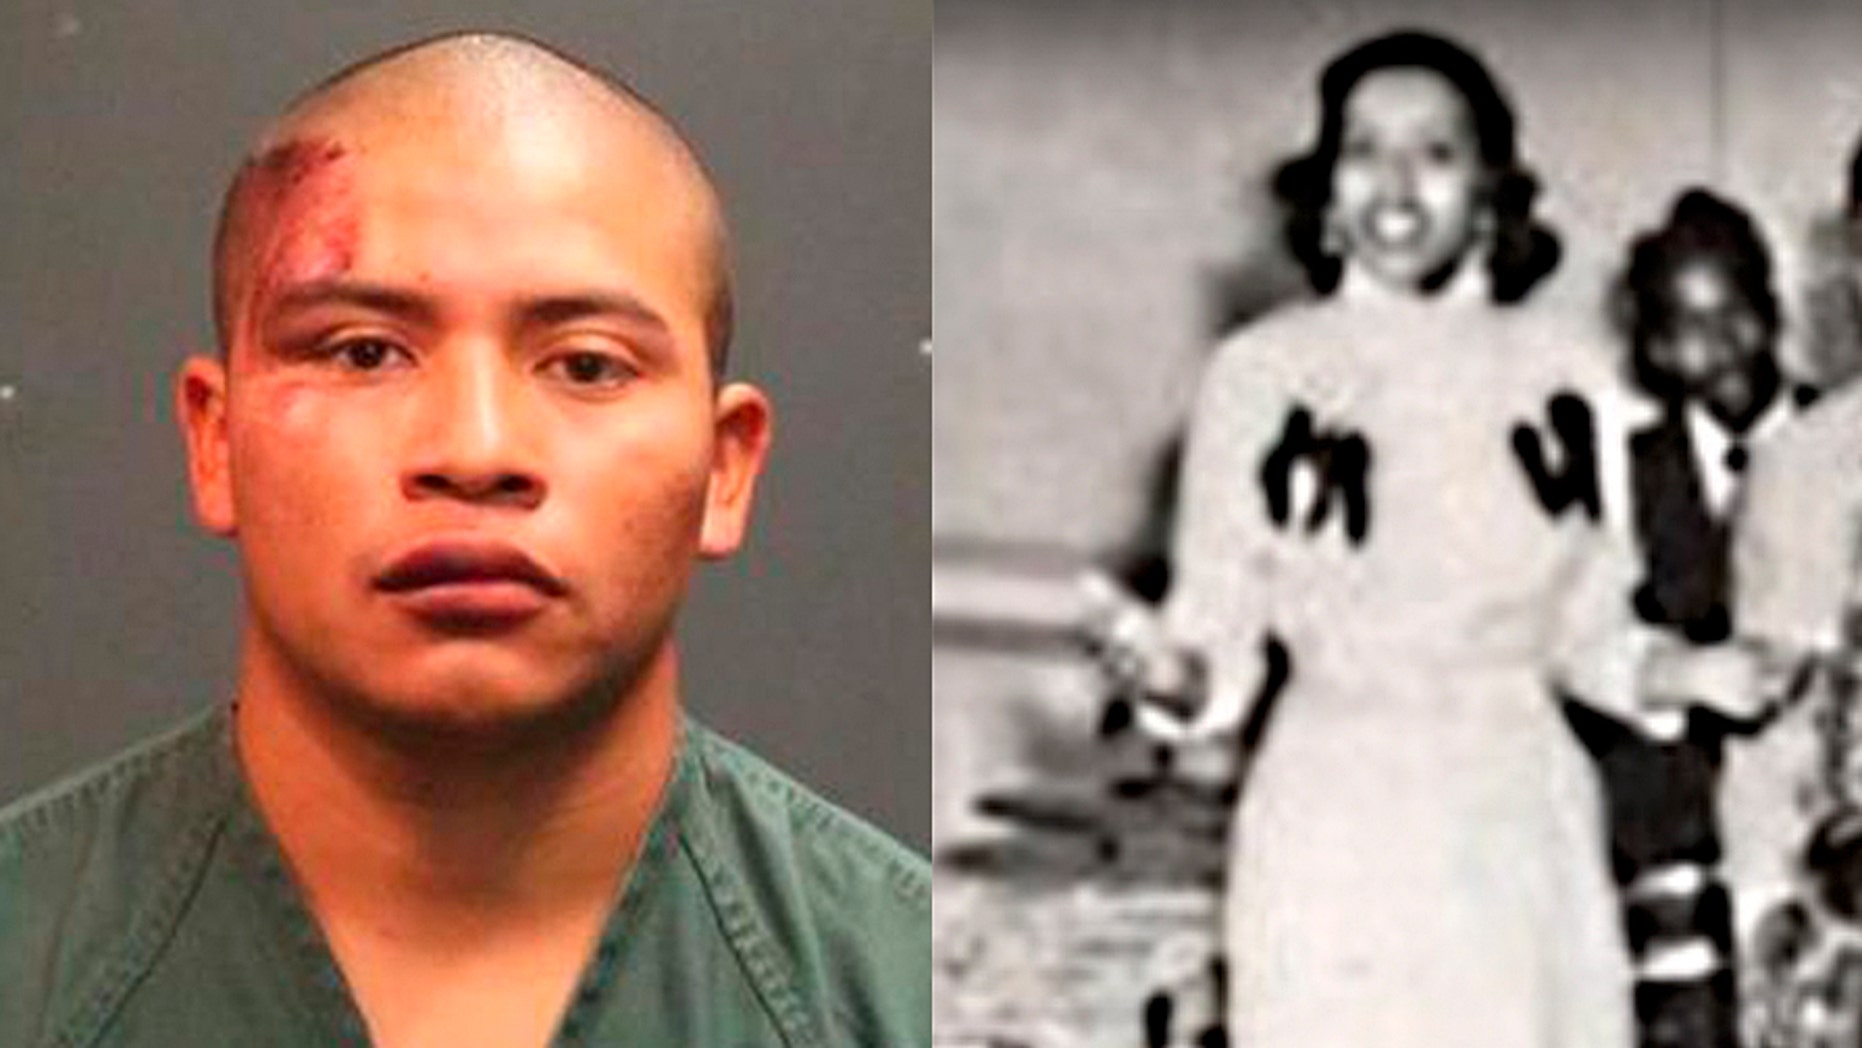 Rosendo Xo Pec, left, was charged Wednesday with murder with special circumstances and could face the death penalty after prosecutors said he killed former 1960s soul singer Betty Jane Willis during an attempted rape on New Year's Day.